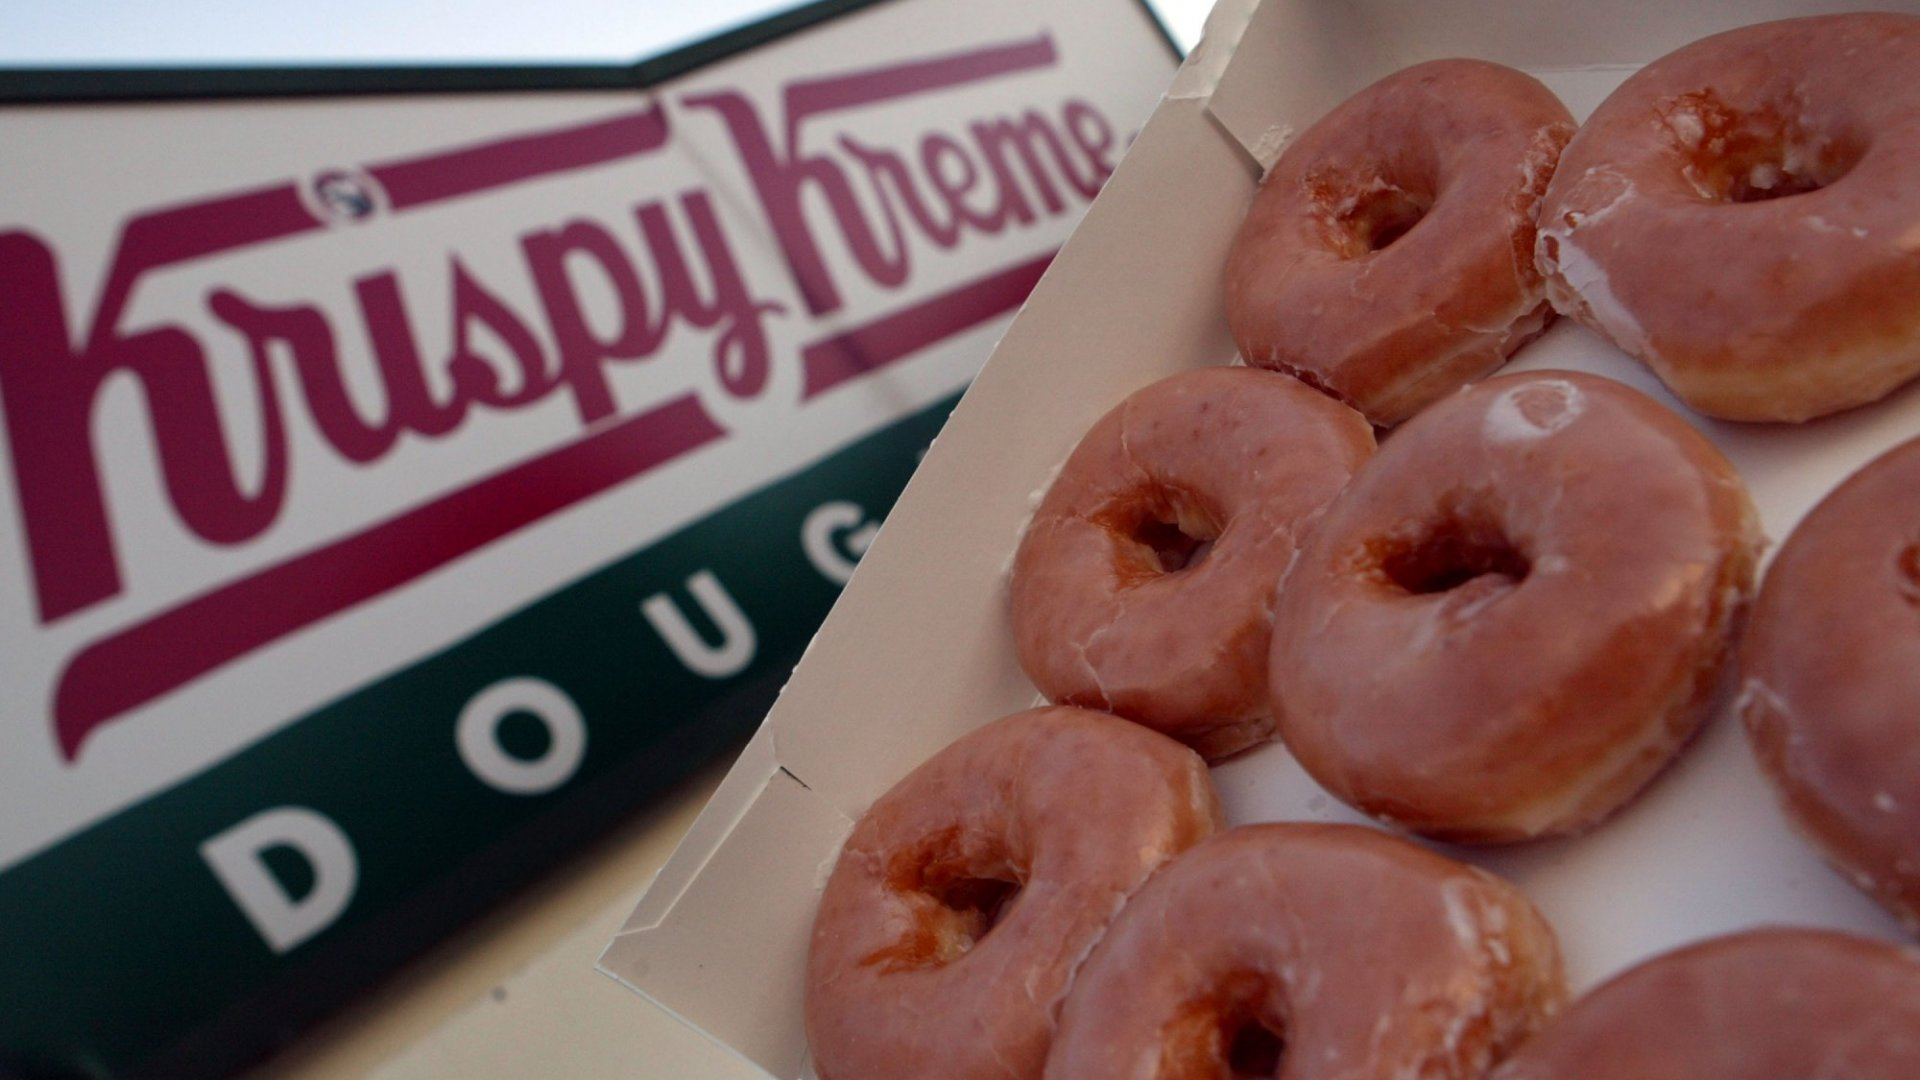 Last Week, Krispy Kreme Was a Villain. Now, It's a Hero--Thanks to 1 Very Smart Marketing Decision